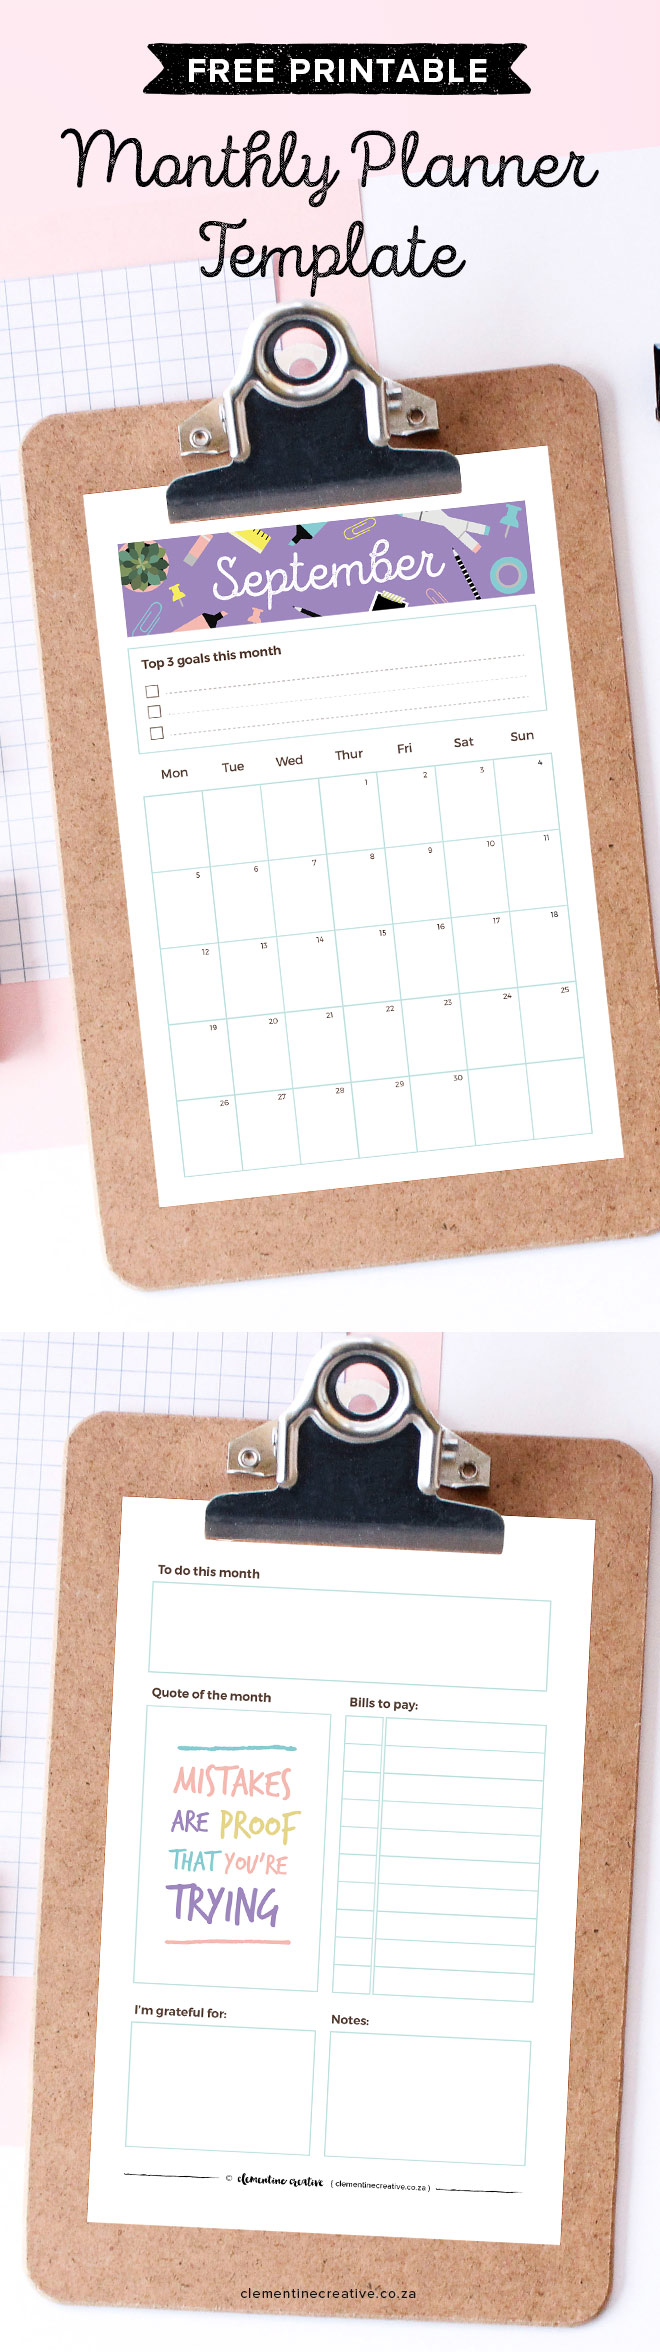 Get a new free printable monthly planner every month to insert in your kikki.K, Filofax or larger binder. Get September's calendar/planner here.